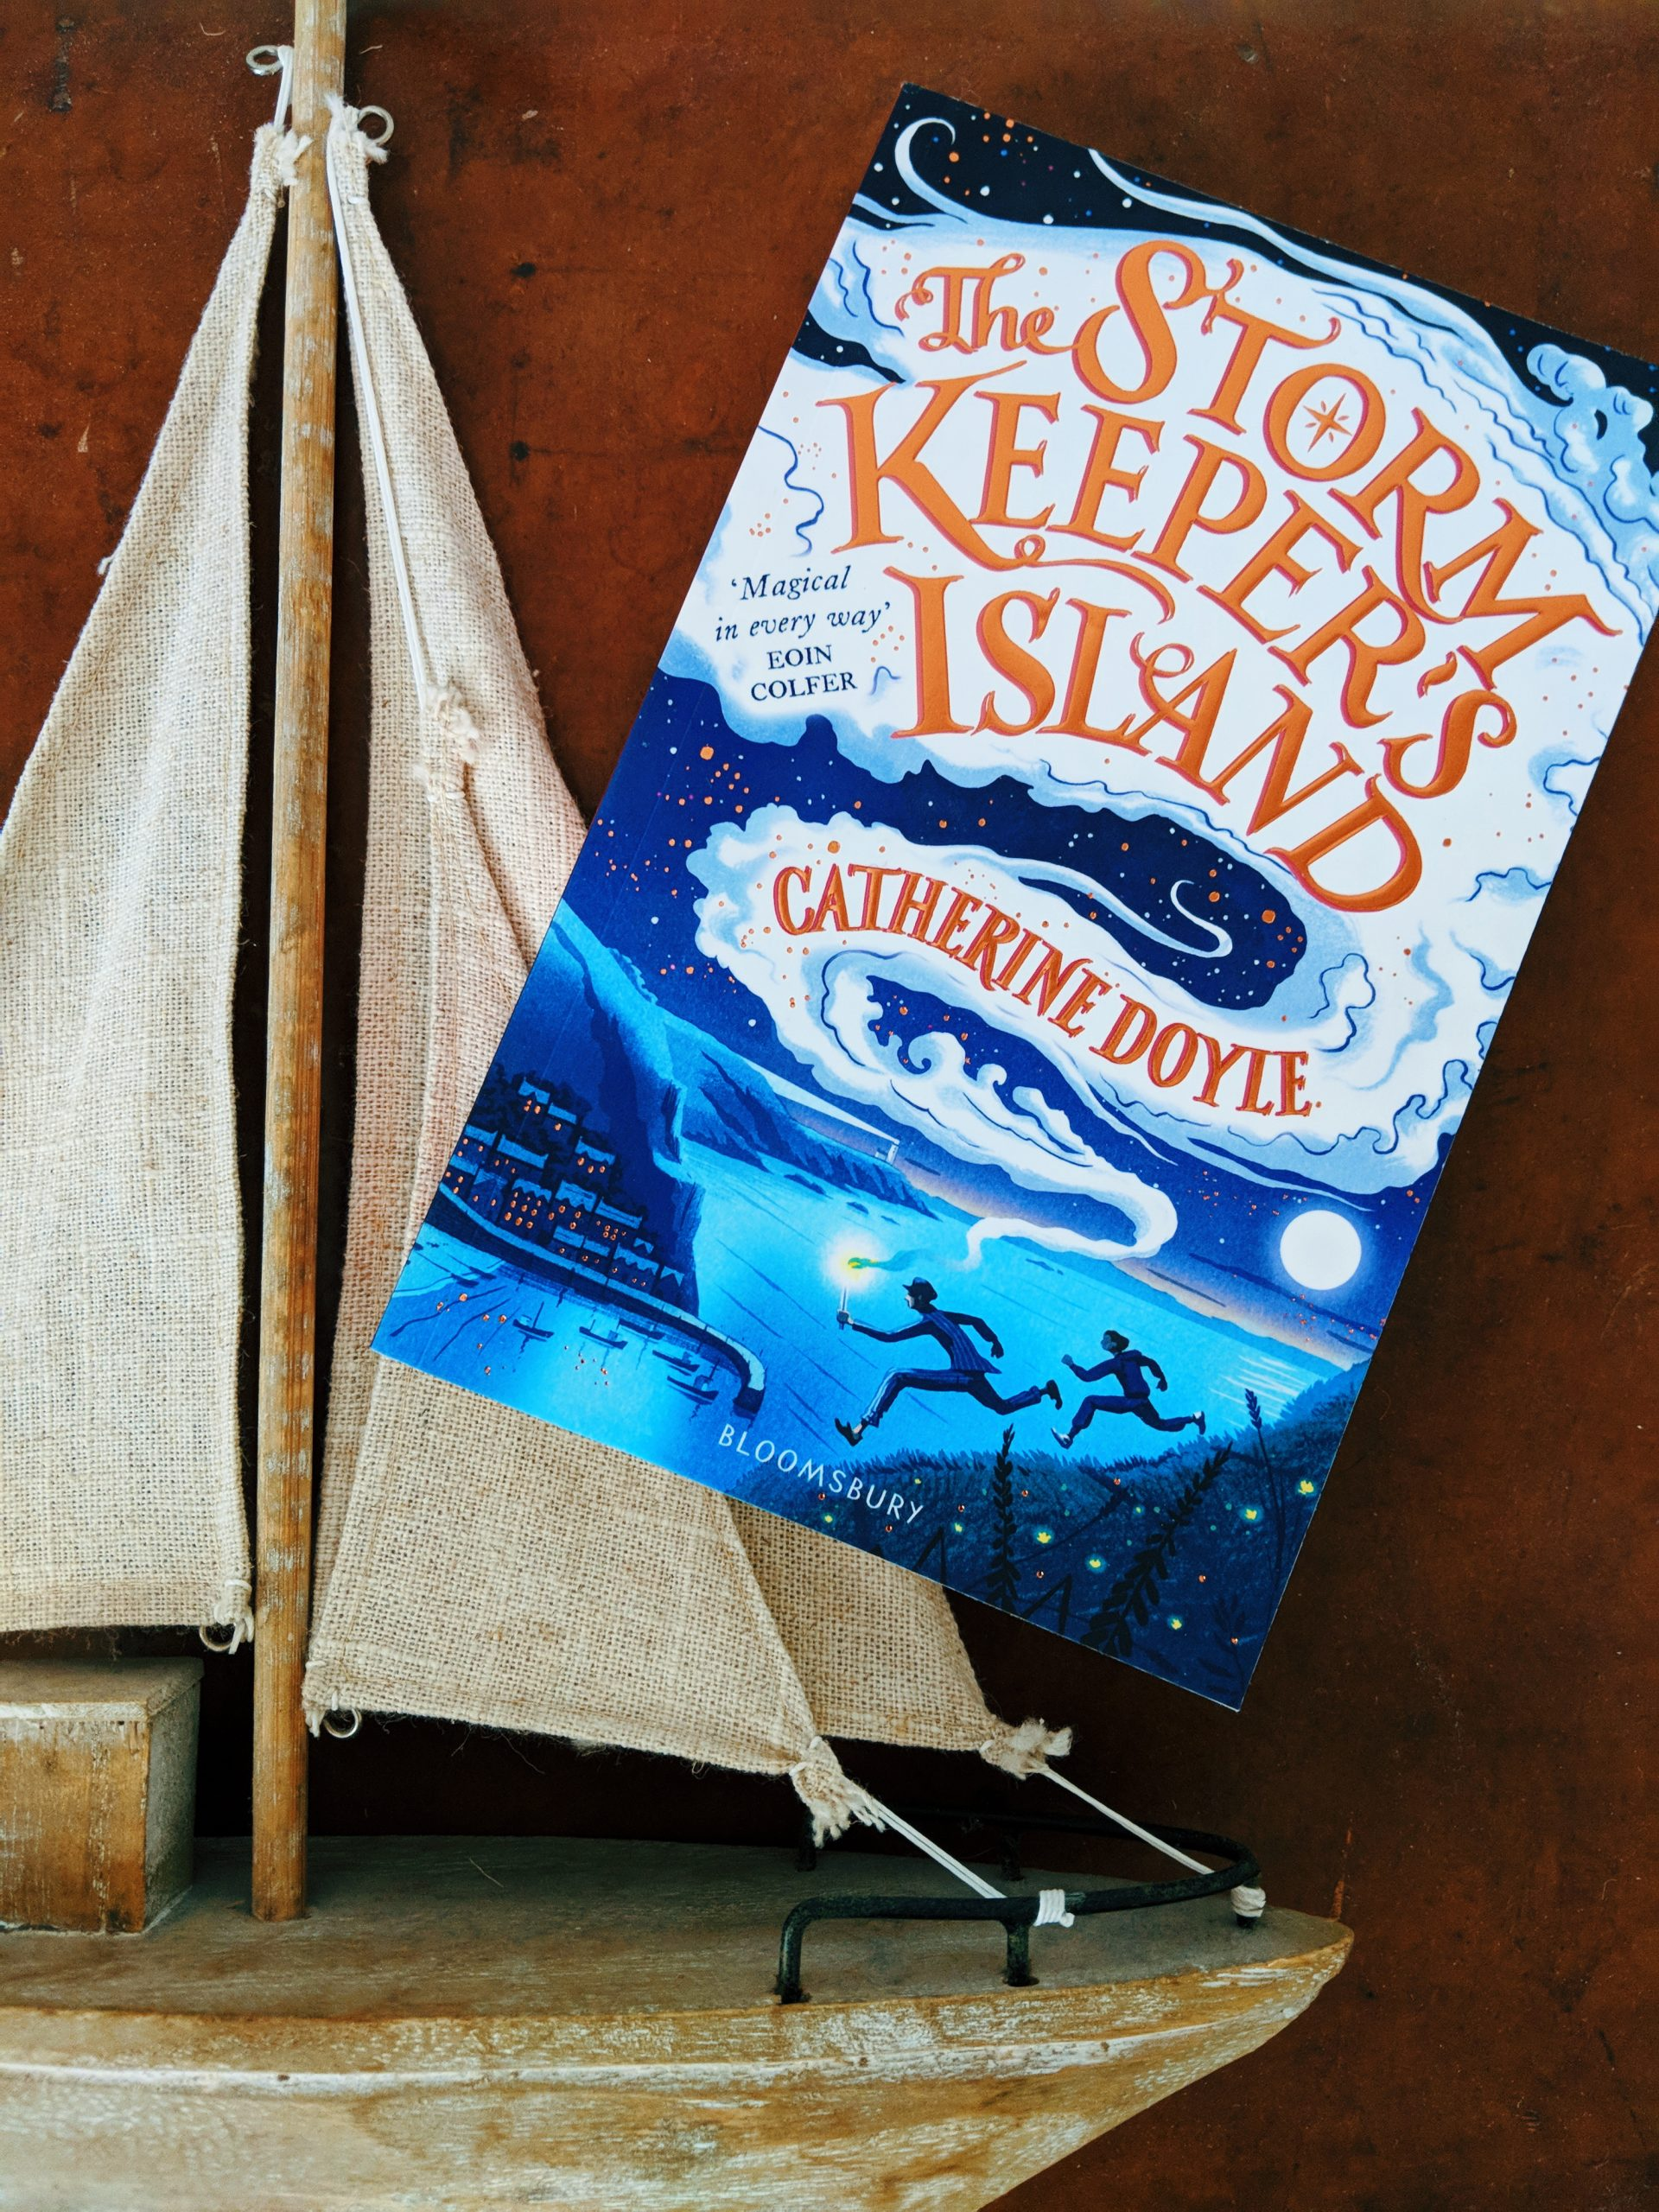 Book Review: The Storm Keeper's Island by Catherine Doyle